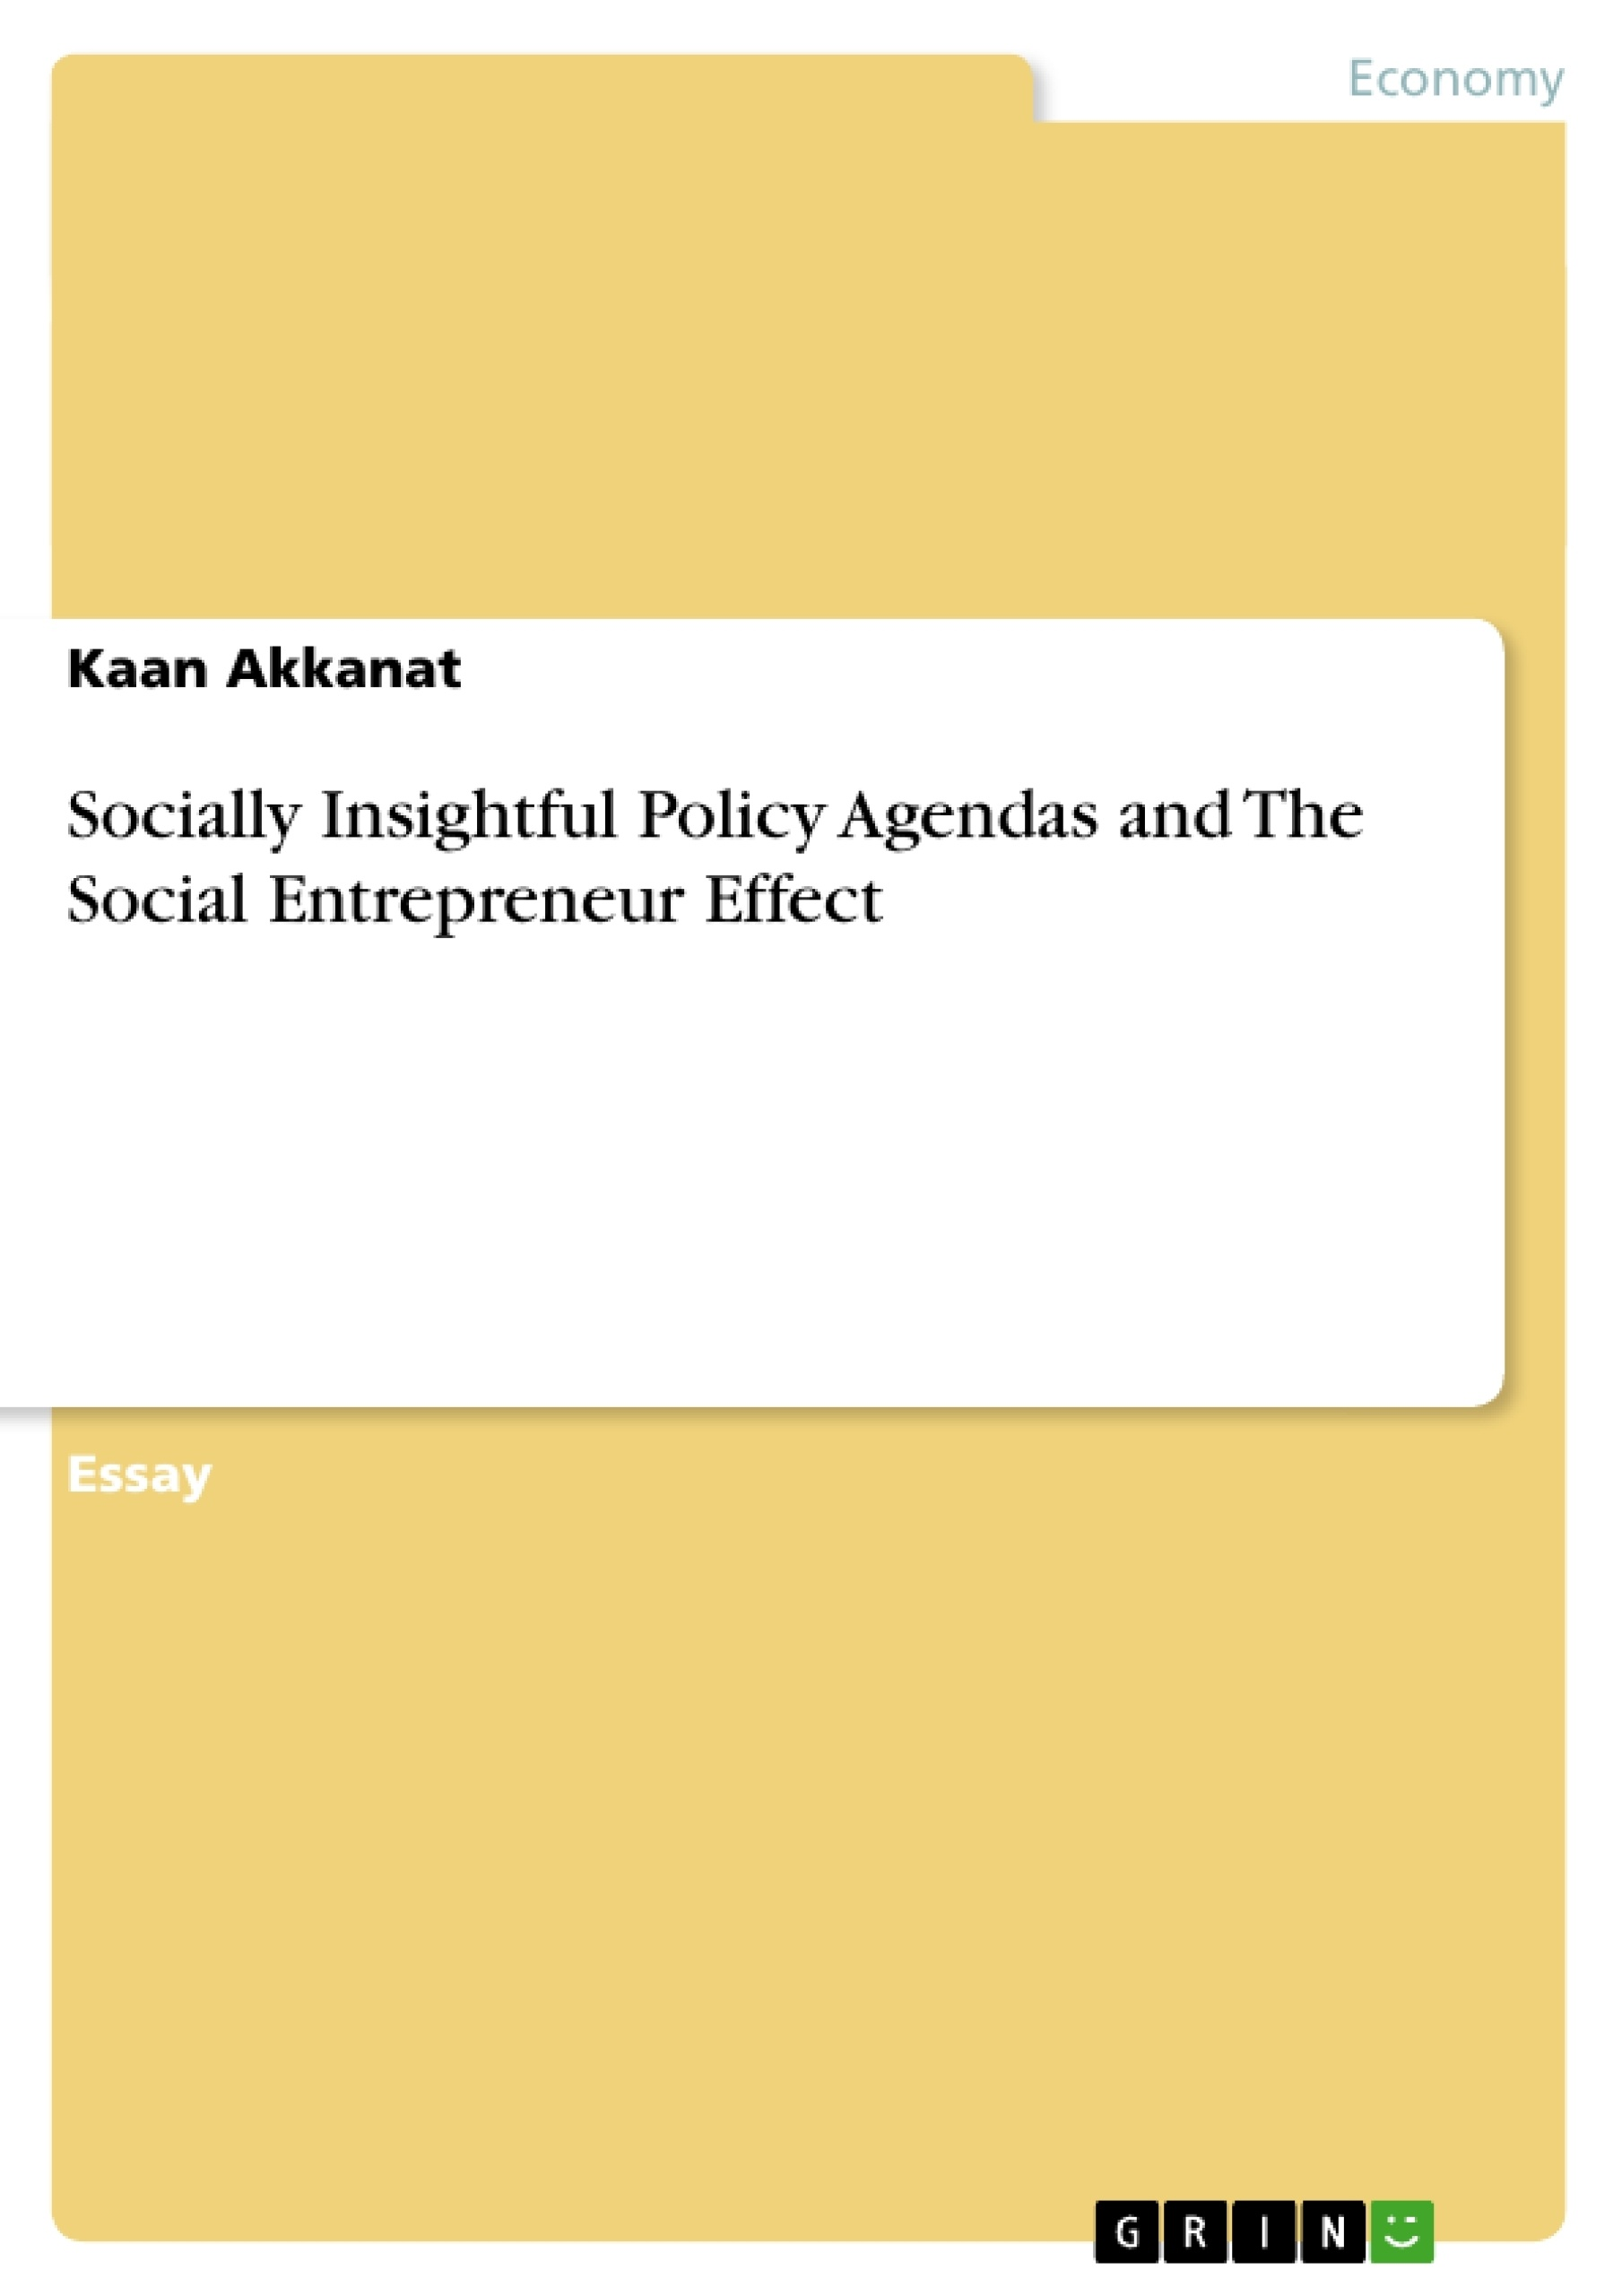 Title: Socially Insightful Policy Agendas and The Social Entrepreneur Effect